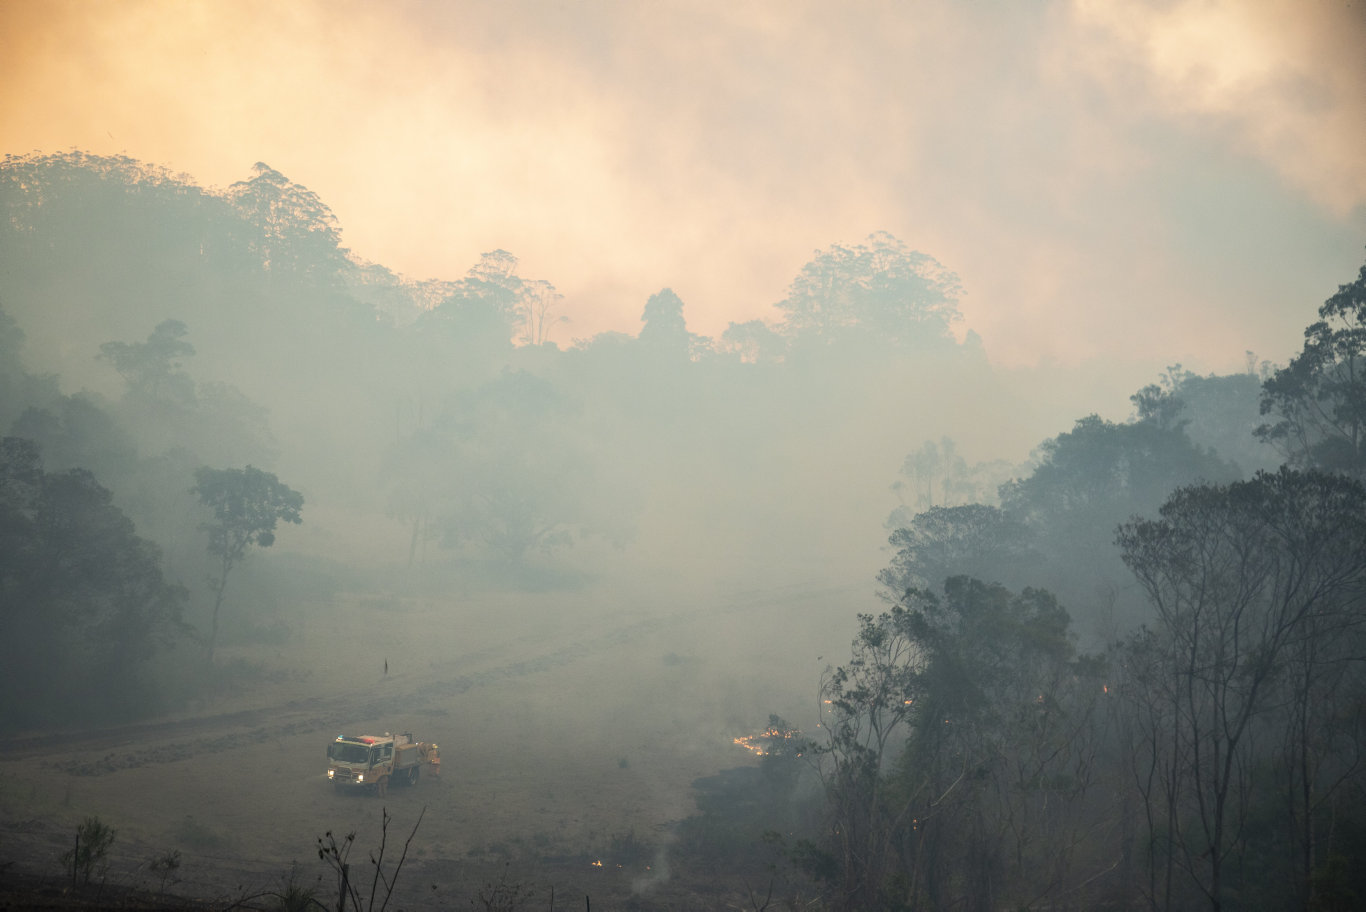 Queensland Fire and Emergency Services capture scenes from the Pechey bushfire.